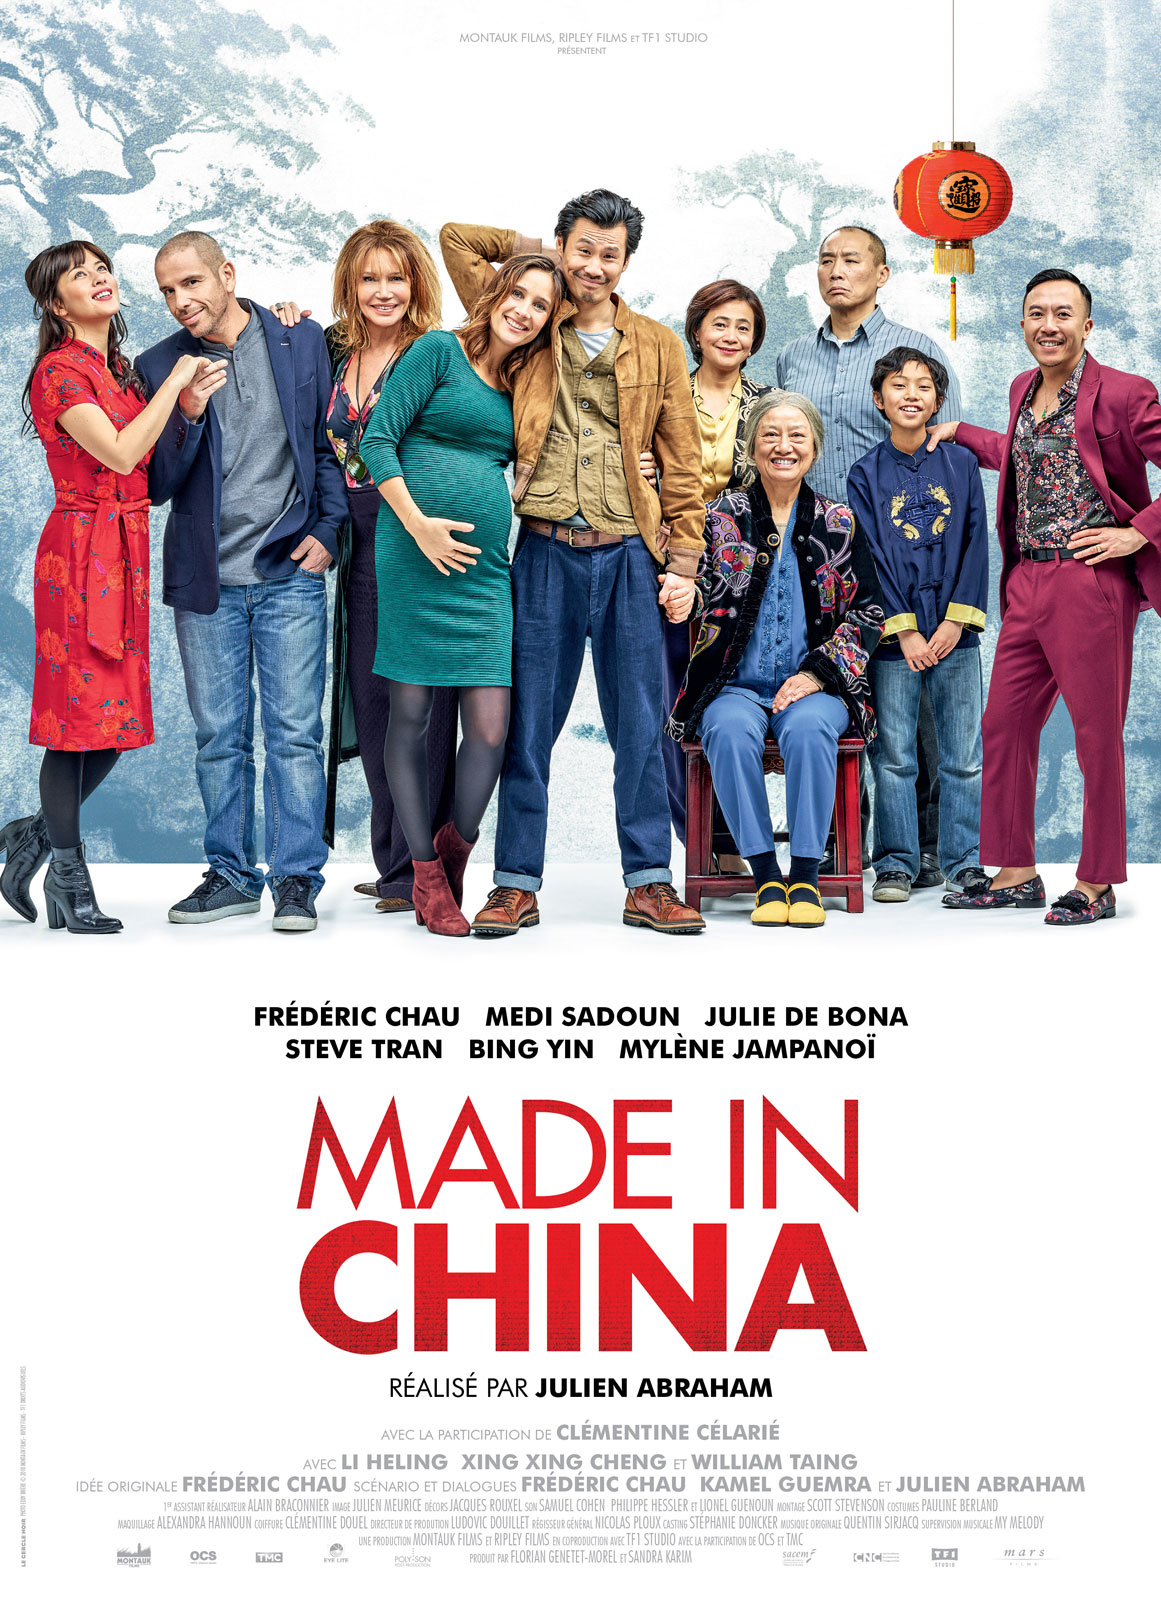 Made in china - 26/06/19